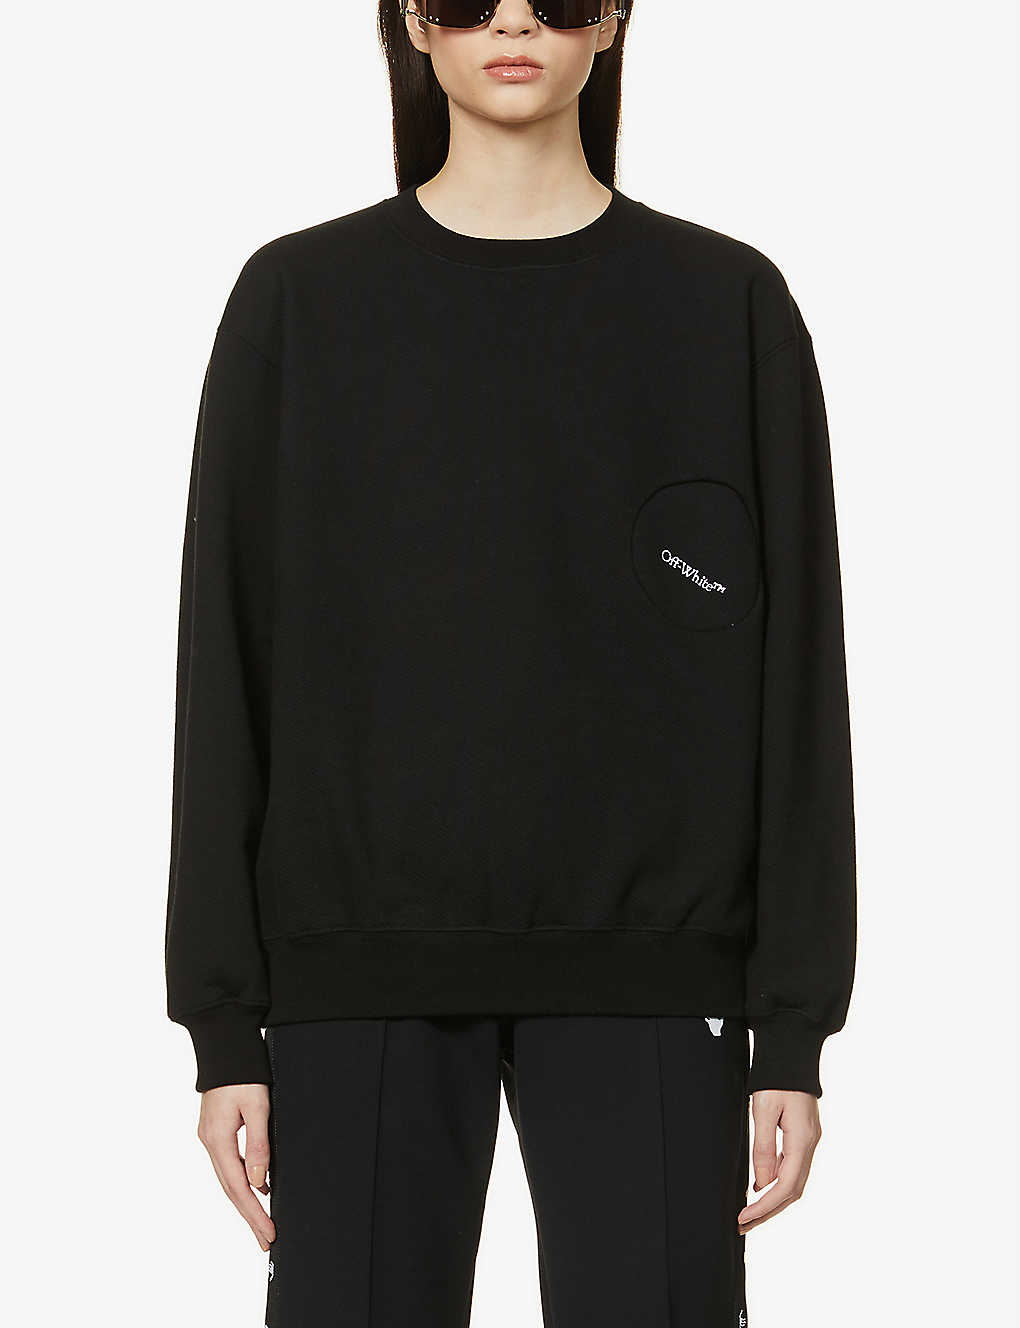 OFF-WHITE C/O VIRGIL ABLOH: Logo-embroidered cotton-jersey sweatshirt